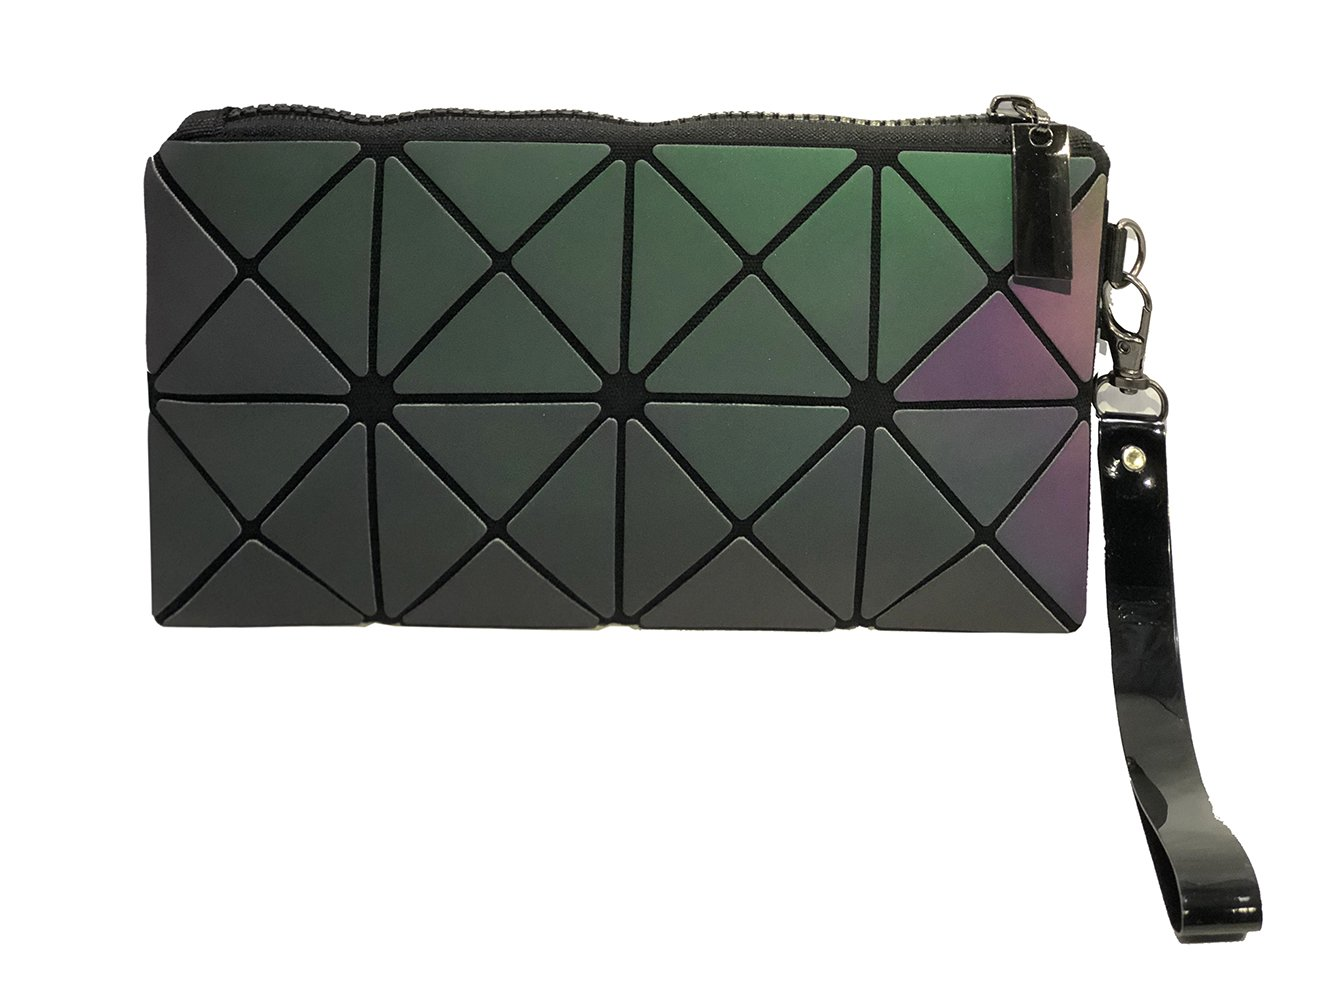 Geometric Design Clutch Purses,Fashion Women's Simple Geometric Holographic Evening Purse or Cosmetic Wristlet Handbag,Makeup Pouch,Phone Bag by Ms Story